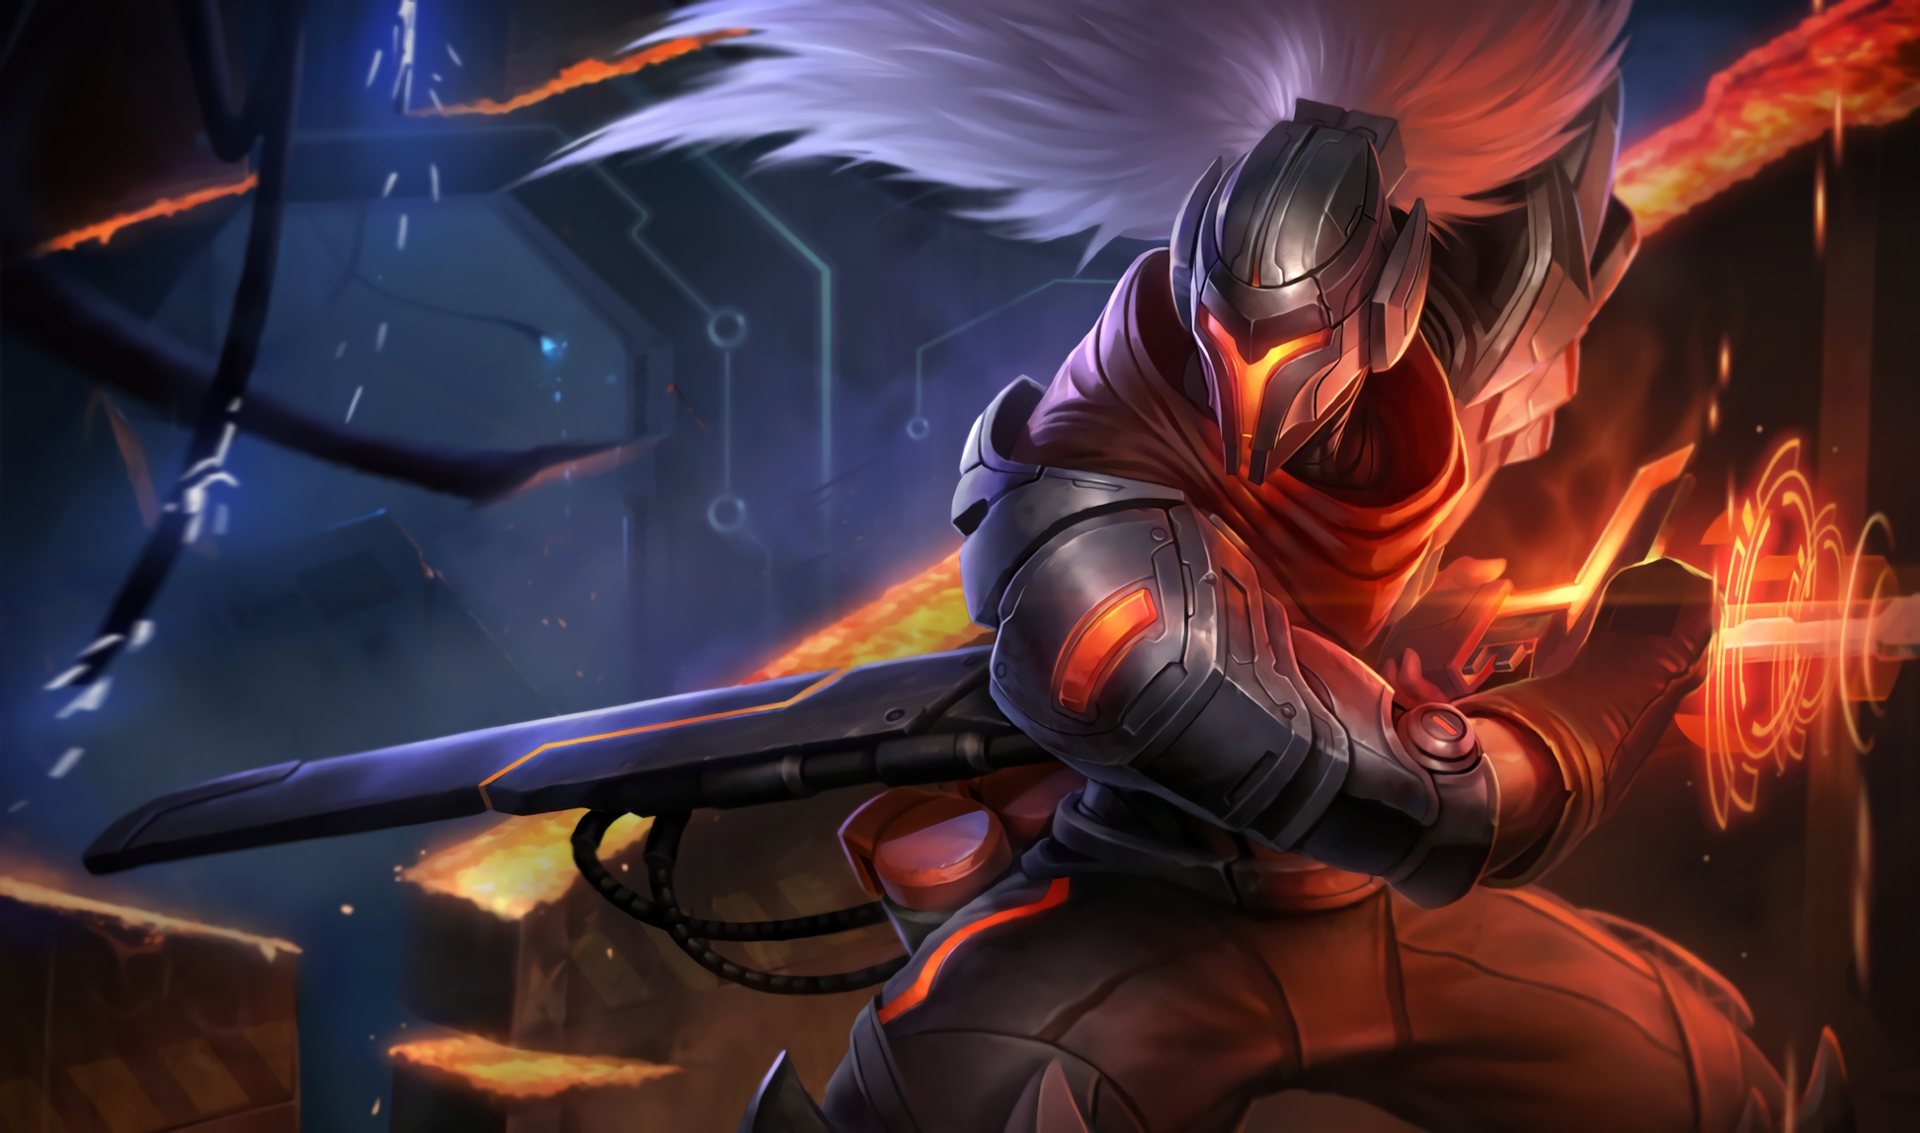 3512 league of legends hd wallpapers | background images - wallpaper